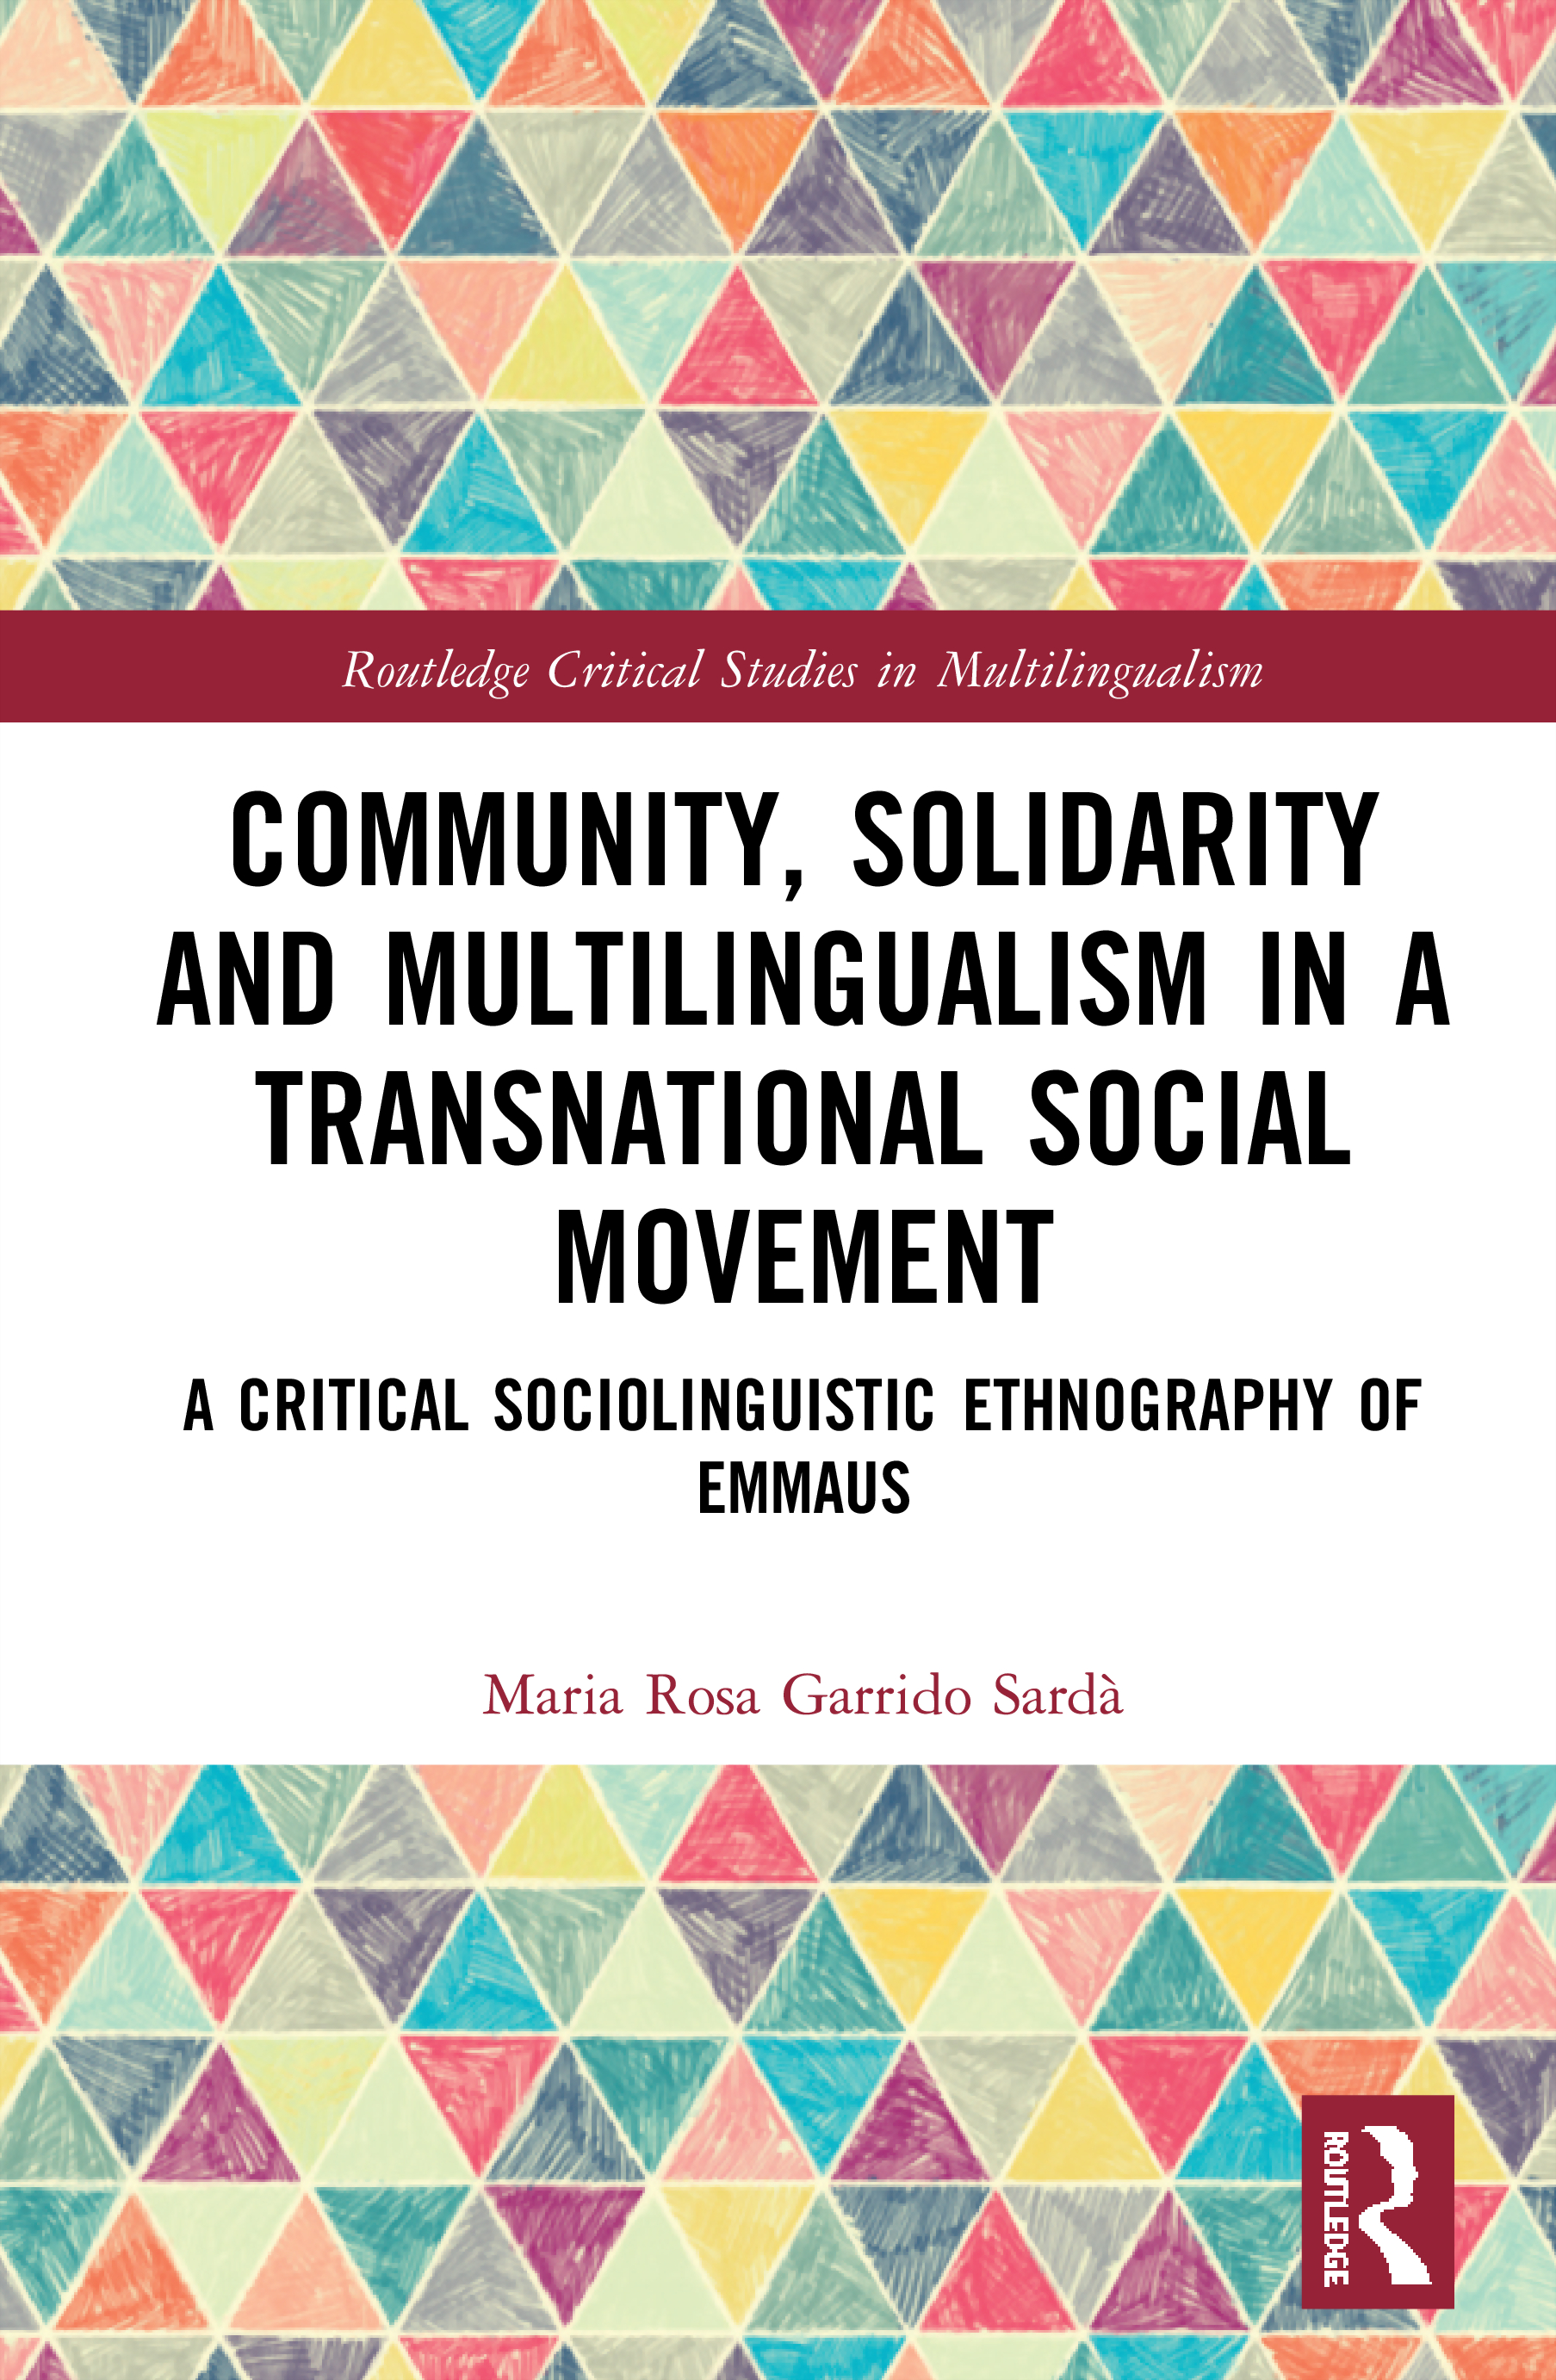 Community, Solidarity and Multilingualism in a Transnational Social Movement: A Critical Sociolinguistic Ethnography of Emmaus book cover